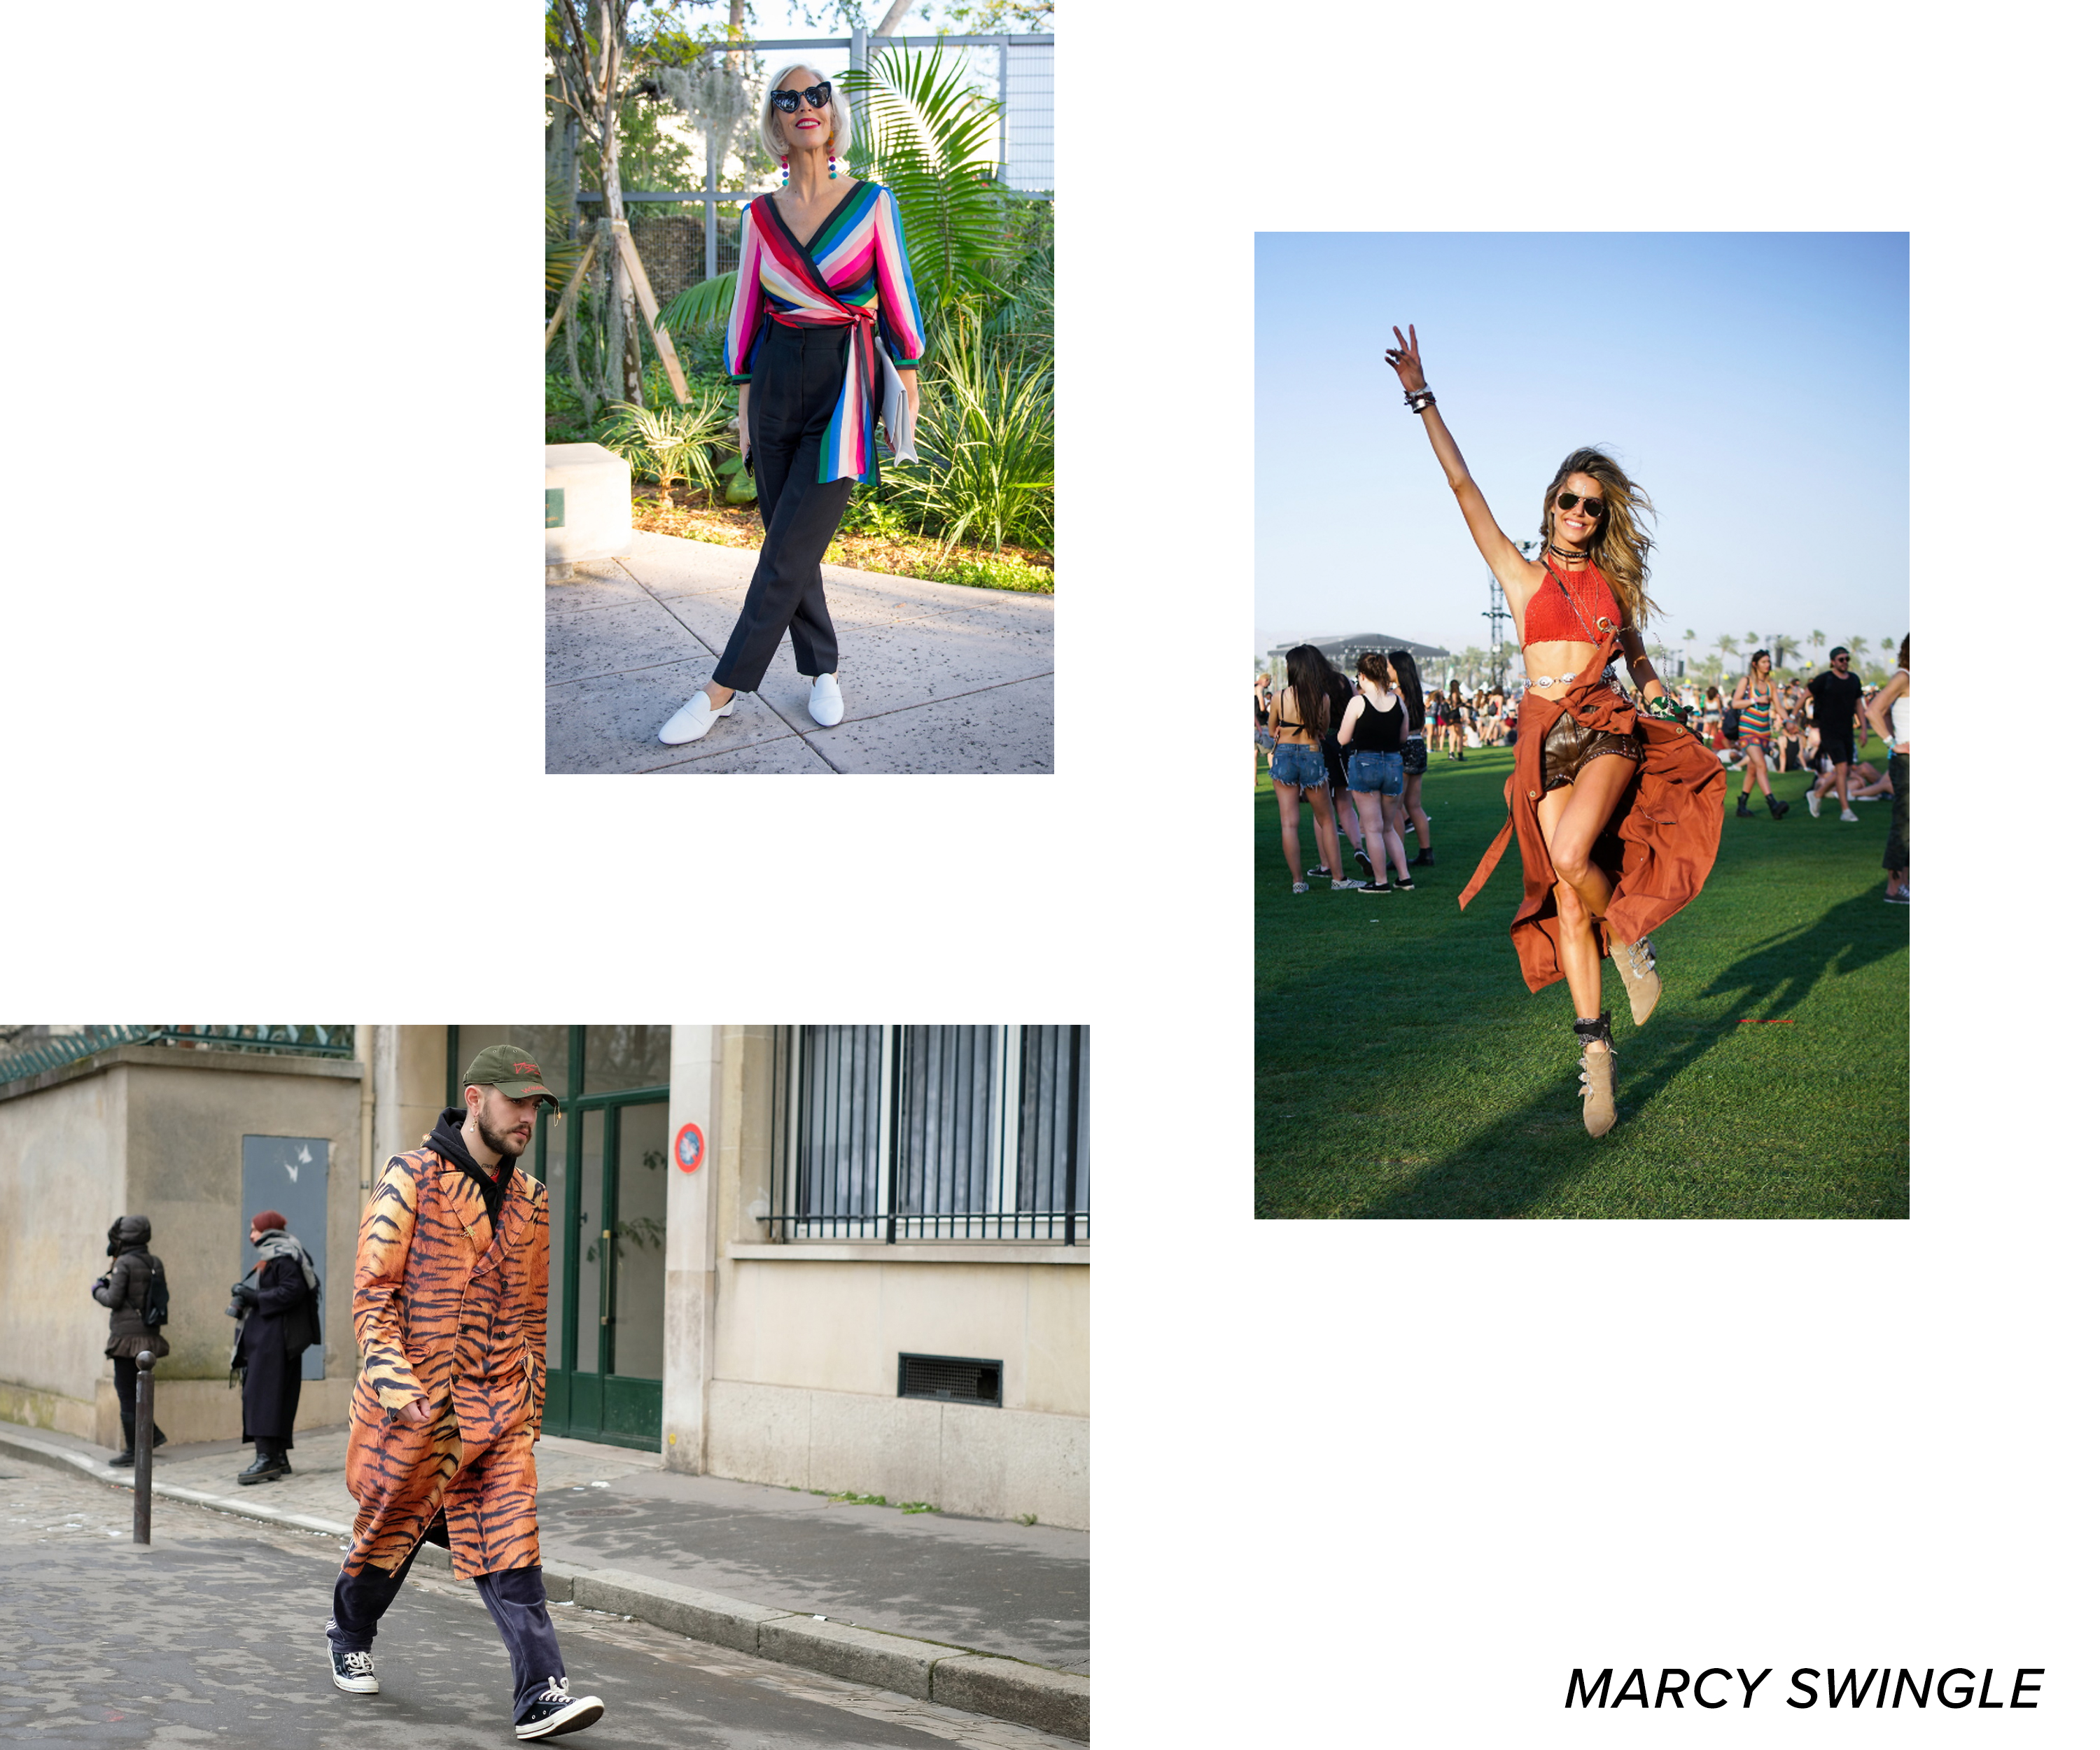 Marcy Swingle - 19 Photographers Taking Photos of Your Favorite Models and Designers - FilterGrade